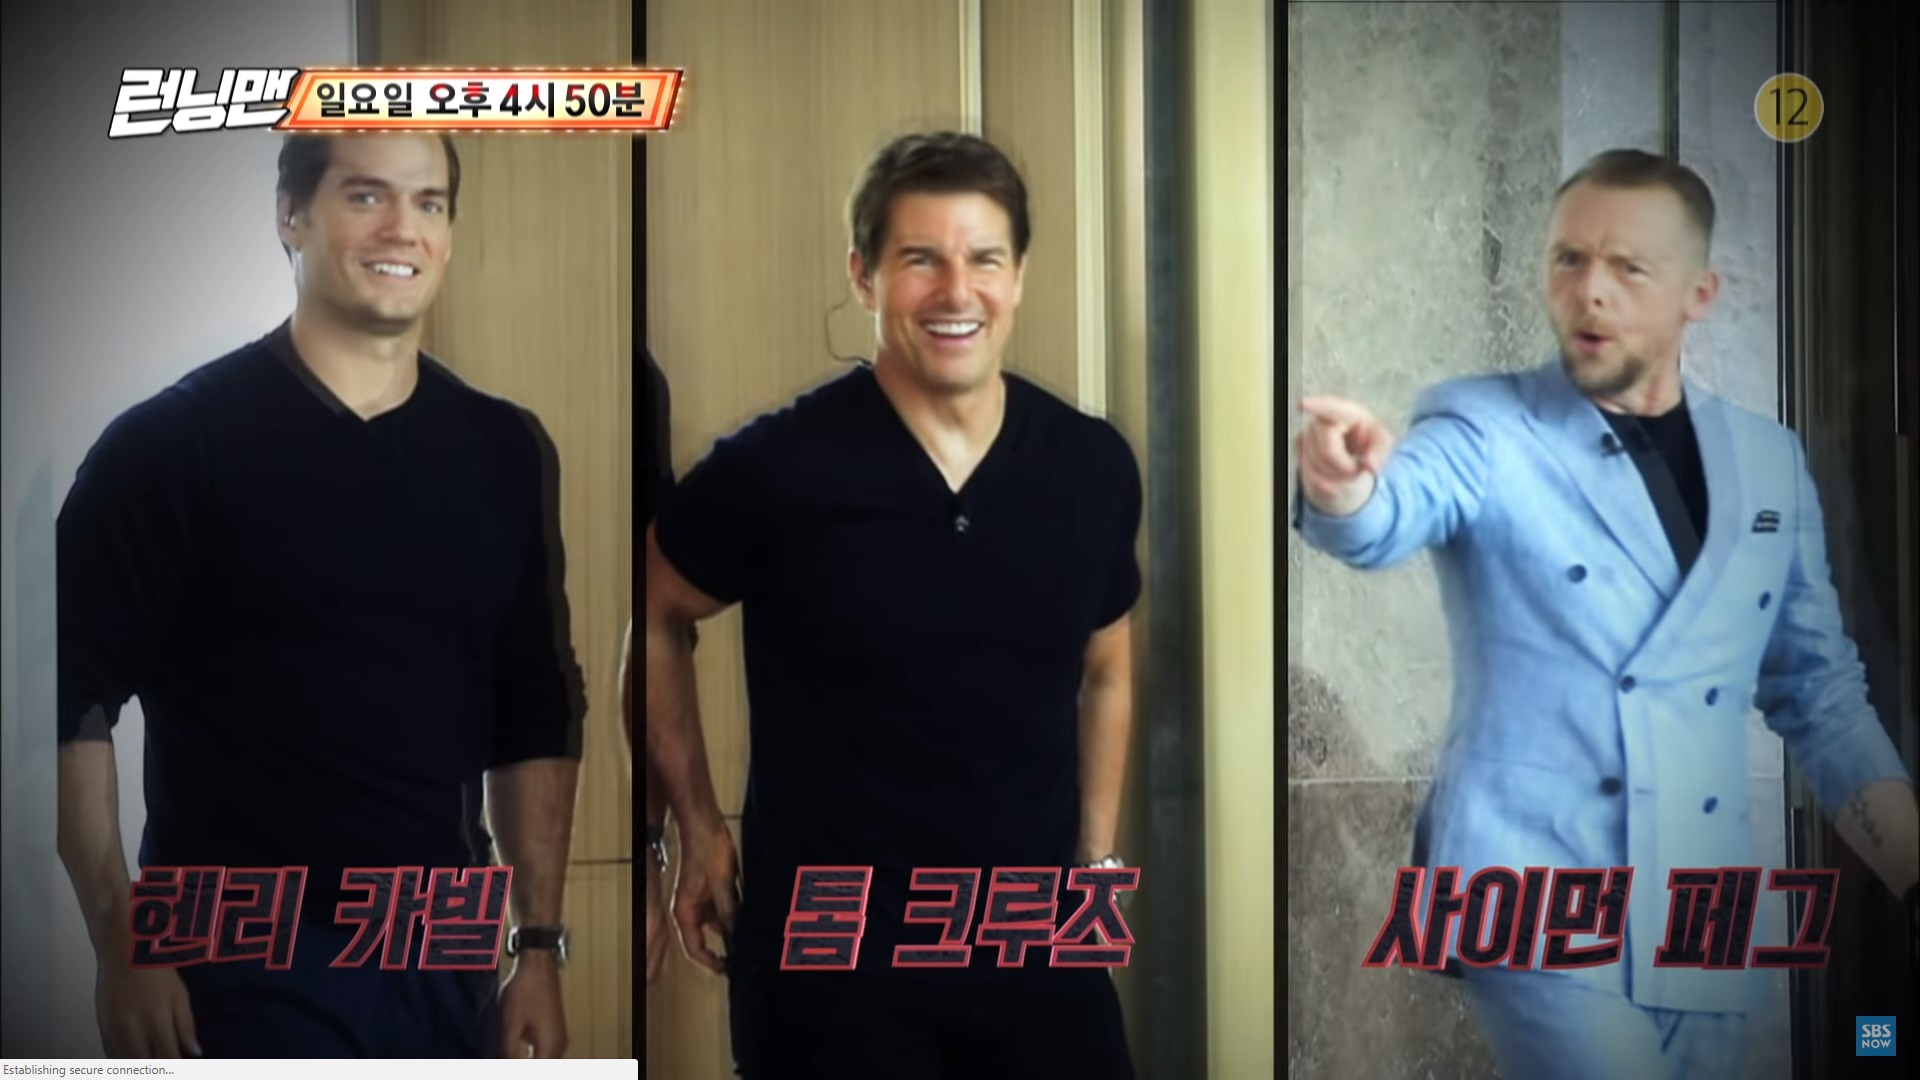 Begini Aksi Bintang Film 'Mission: Impossible' di Episode 'Running Man' Mendatang